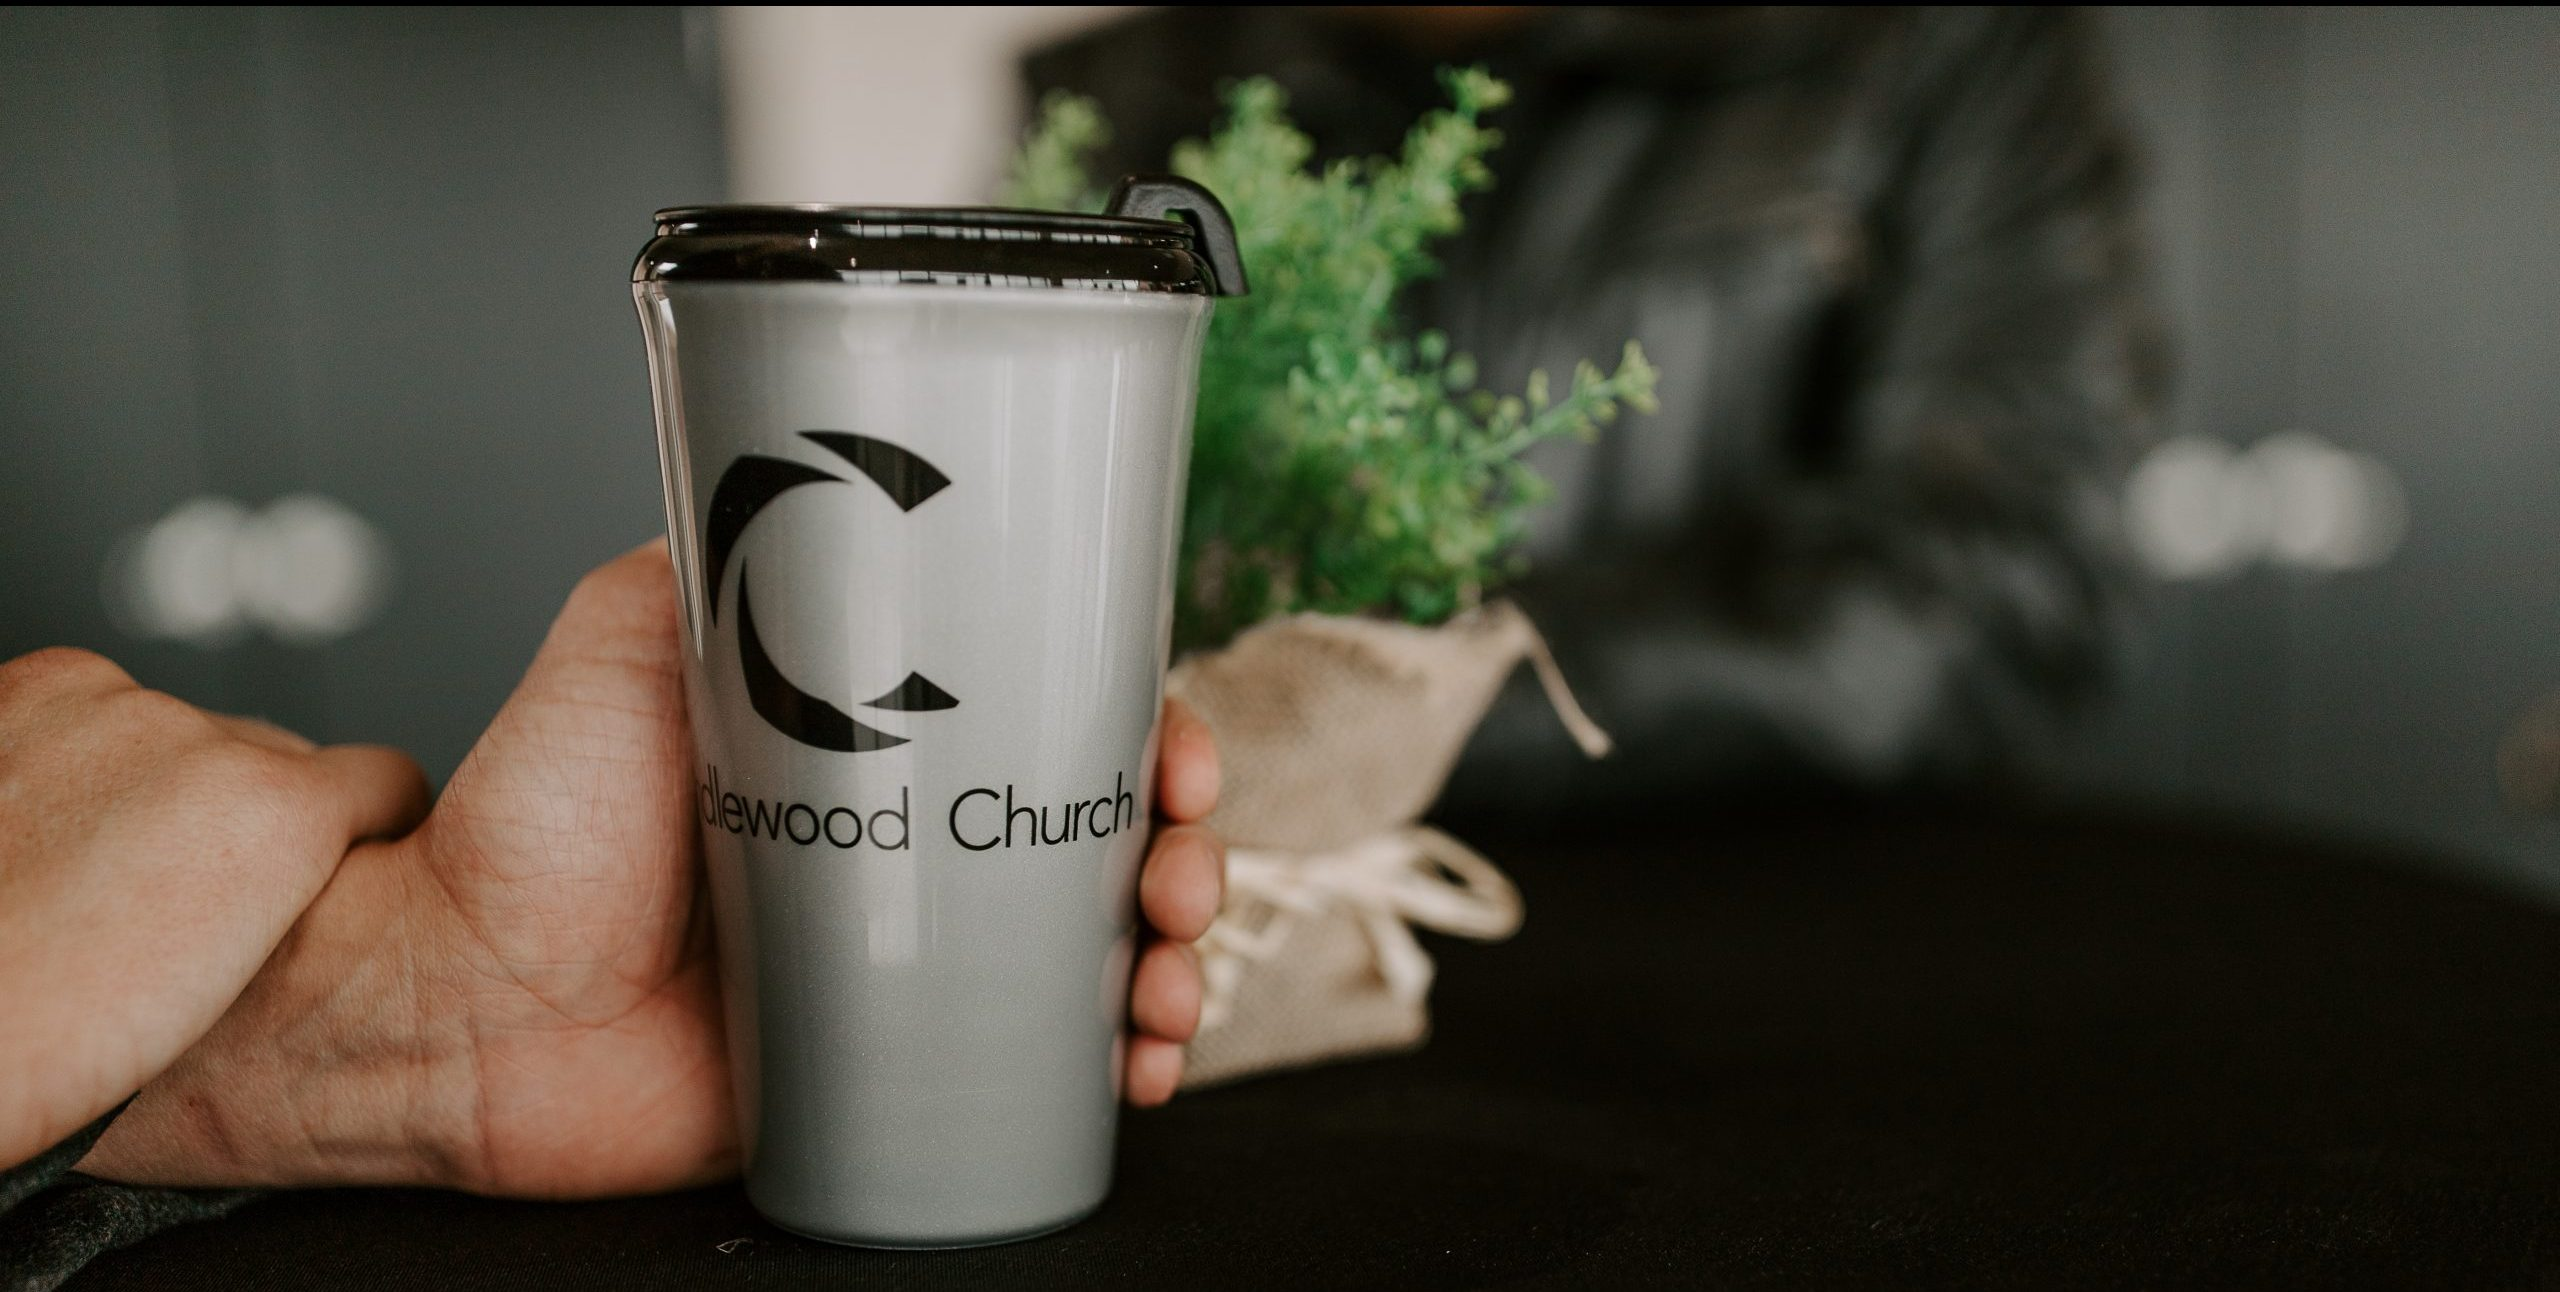 candlewood church mug